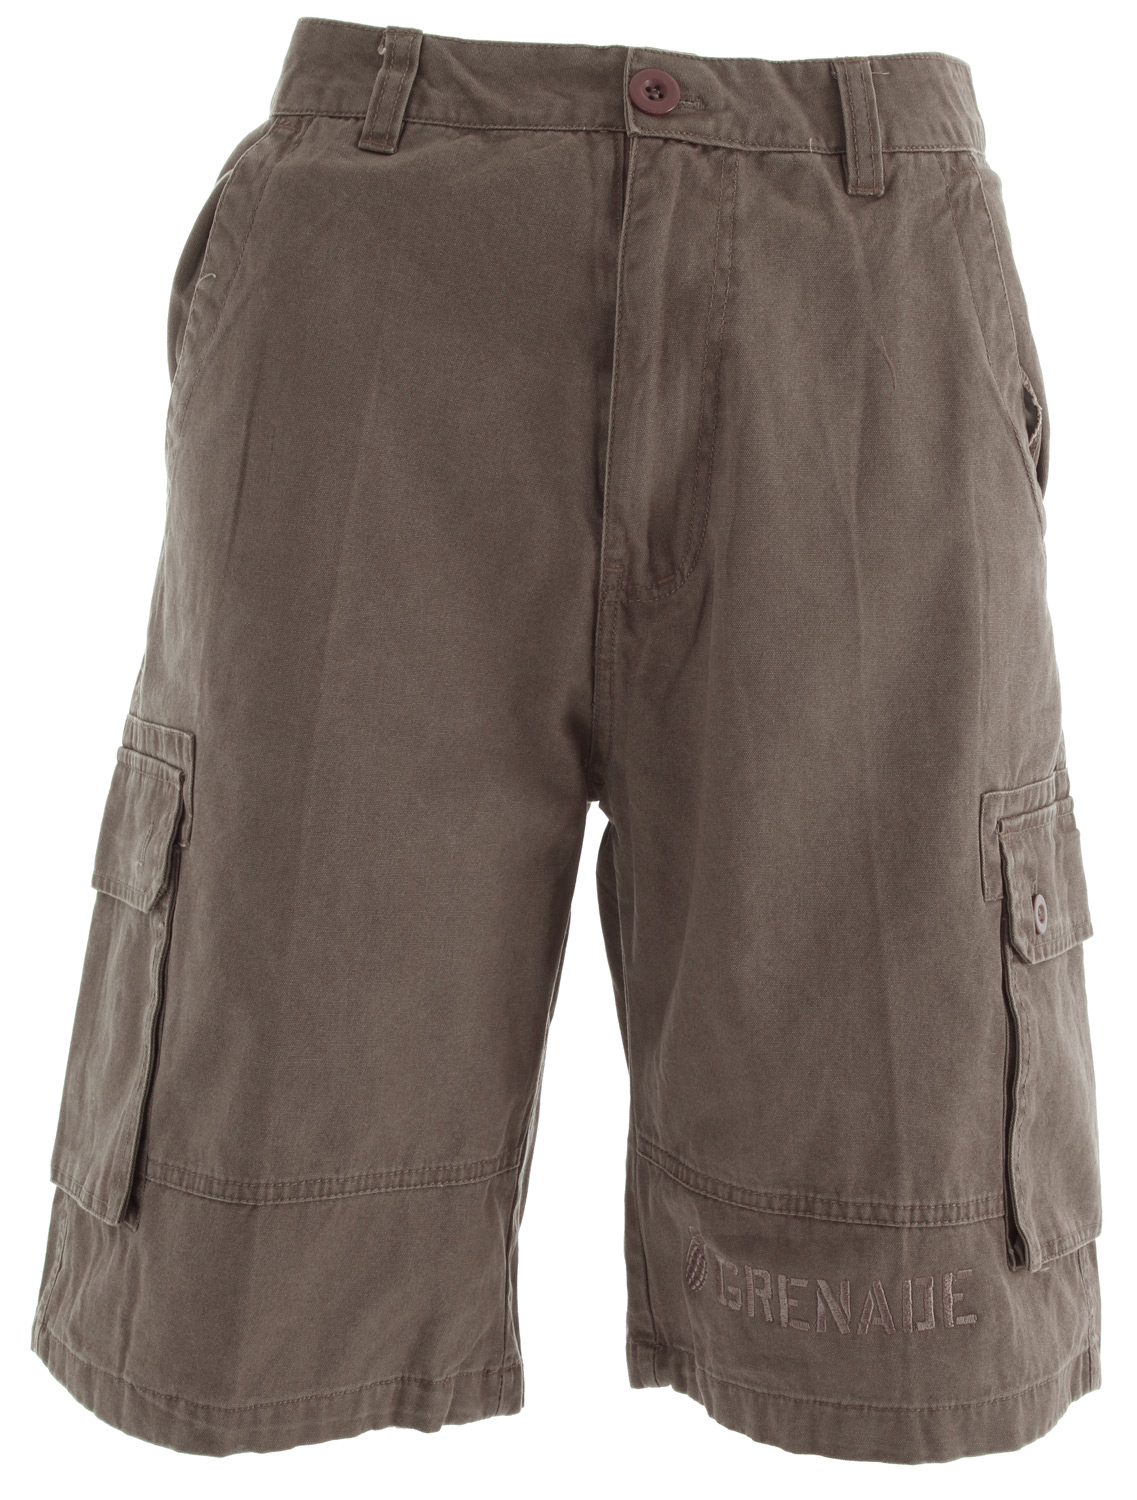 Key Features of the Grenade Cargo Shorts: 100% cotton twill Embroidered leg hit - $27.95